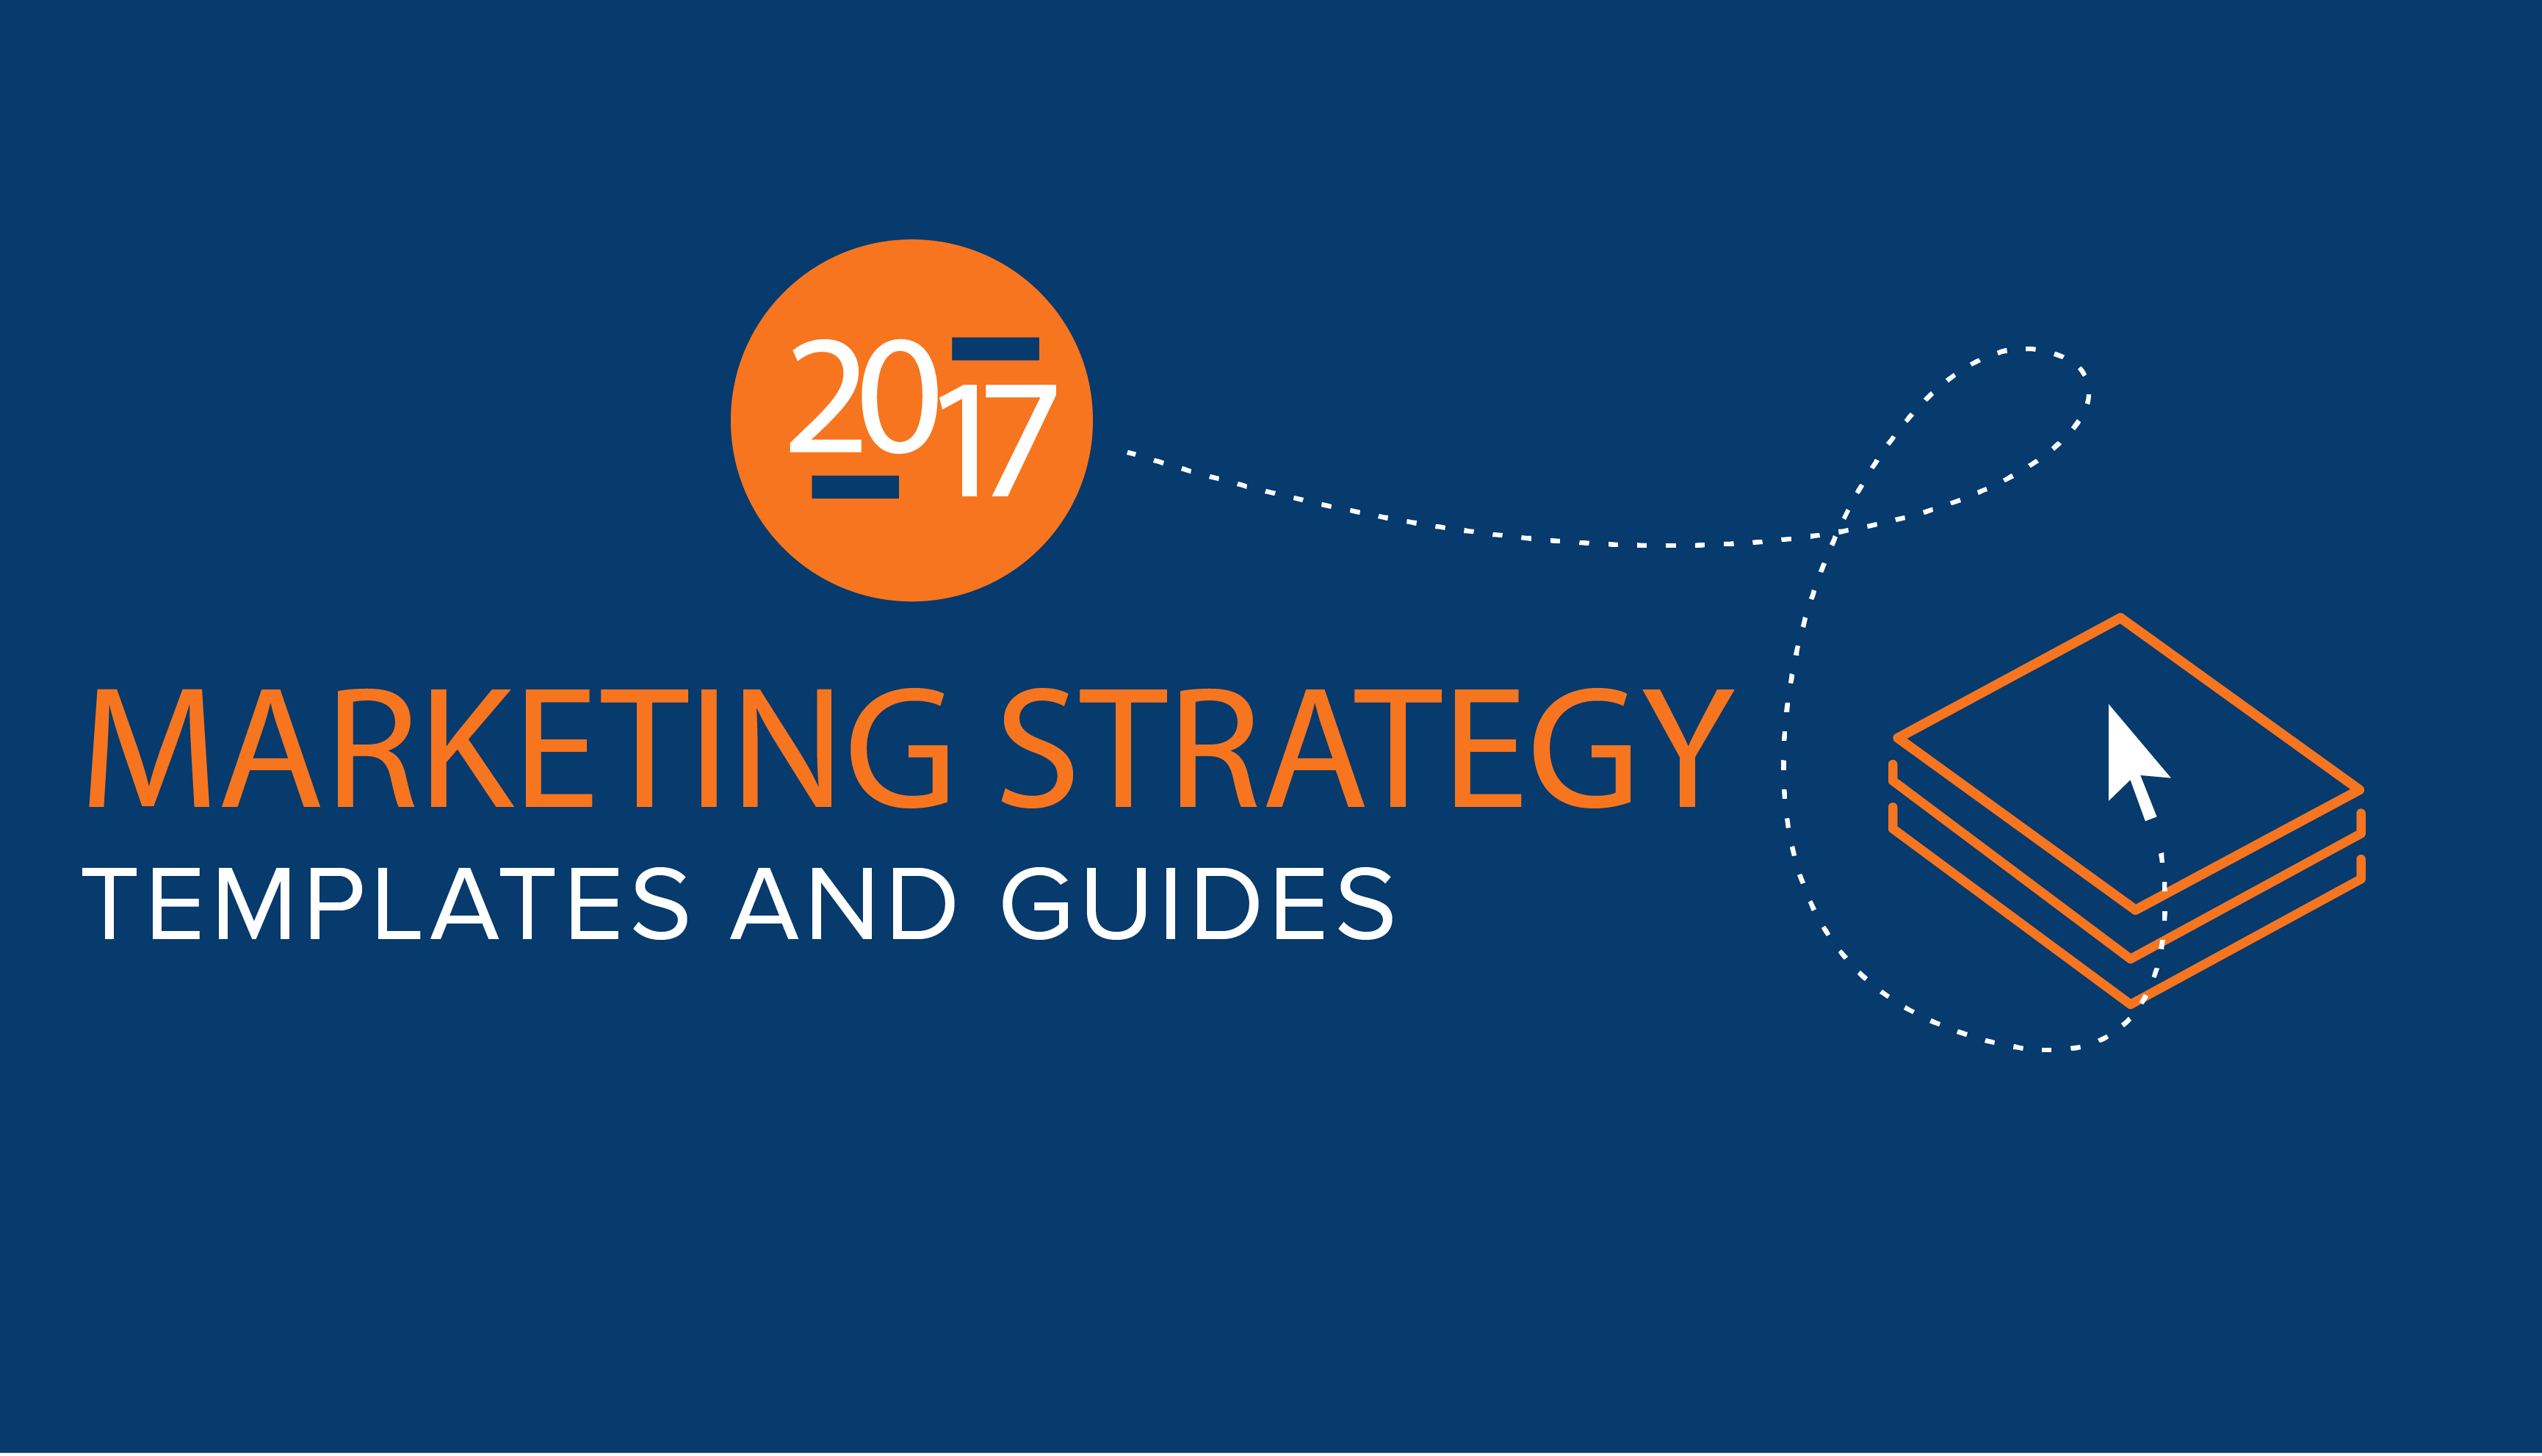 2017 marketing strategy templates guides